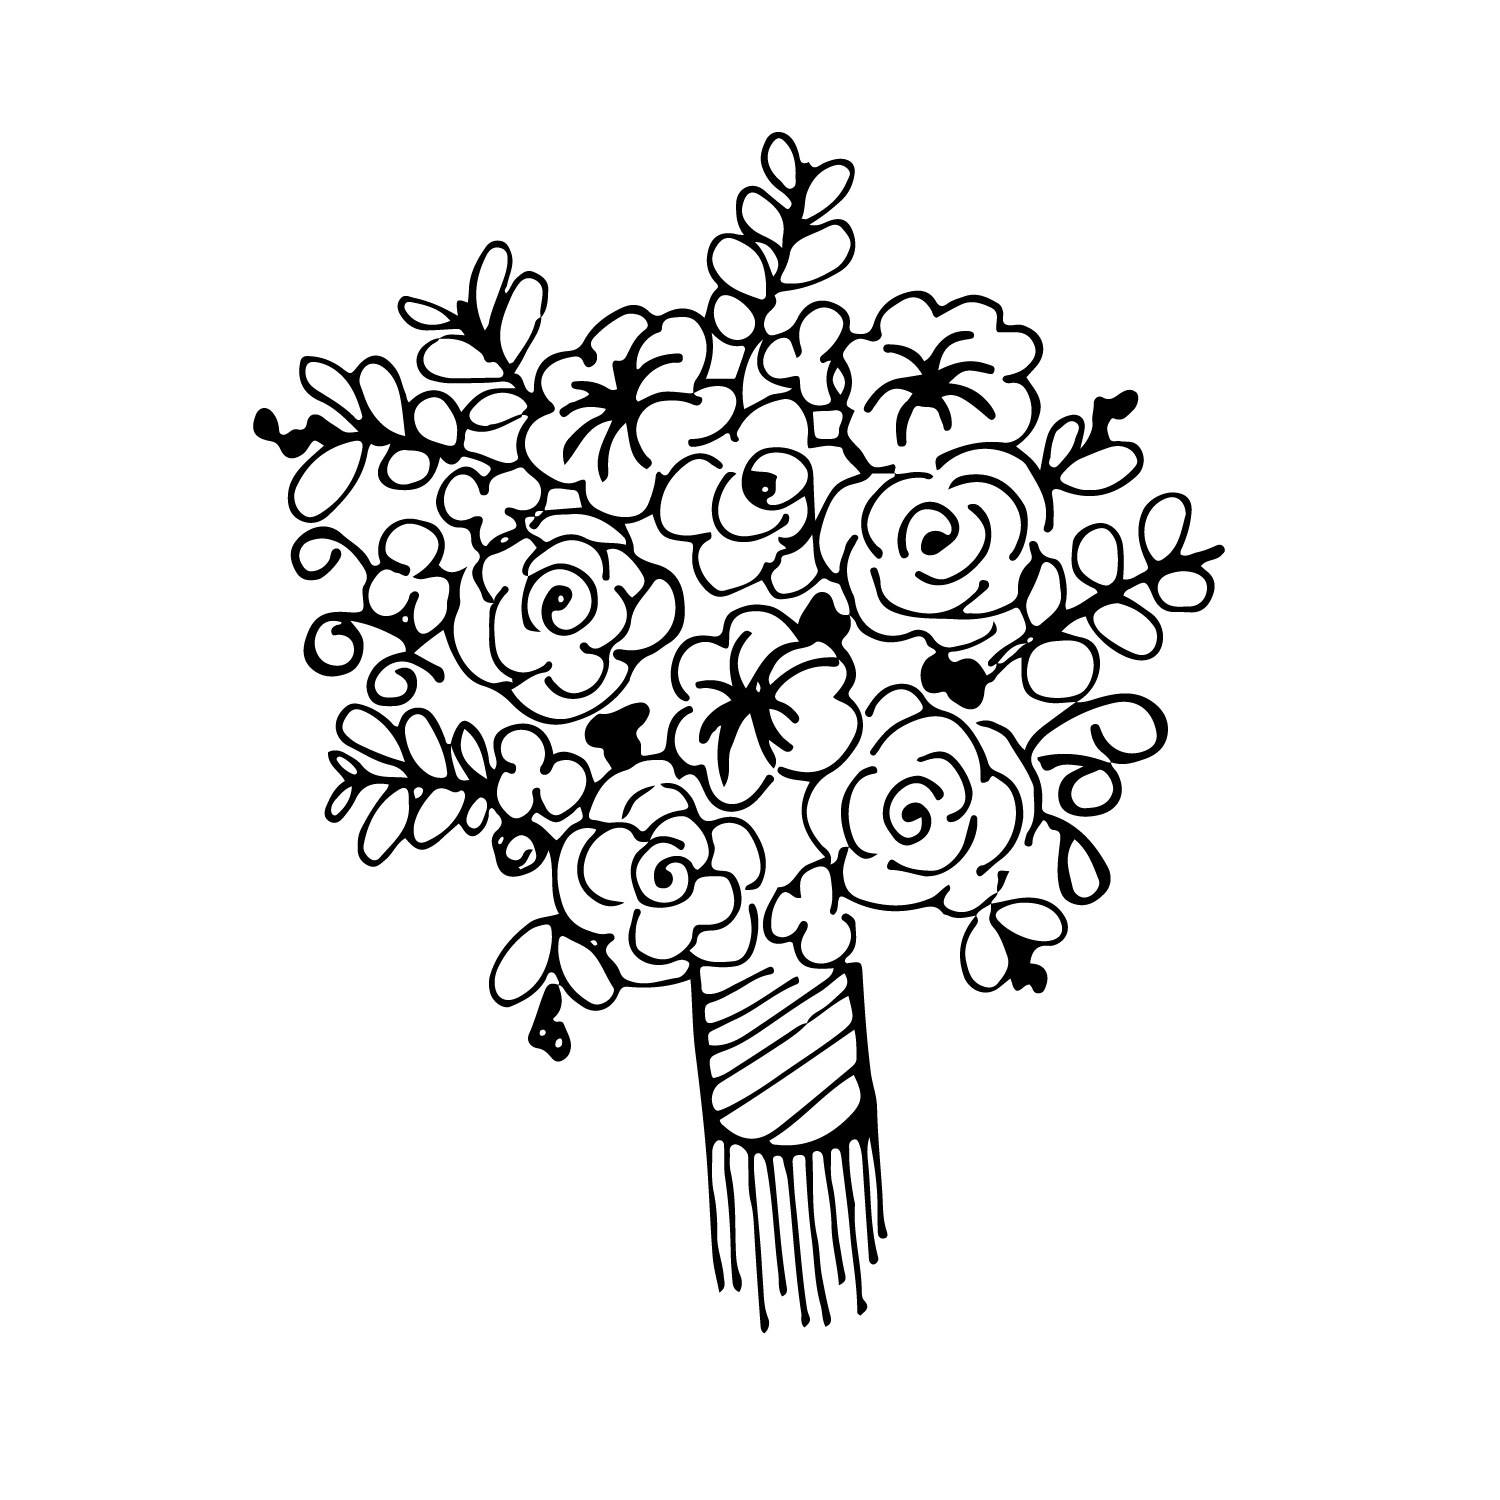 Round Bouquet Drawing-01.png